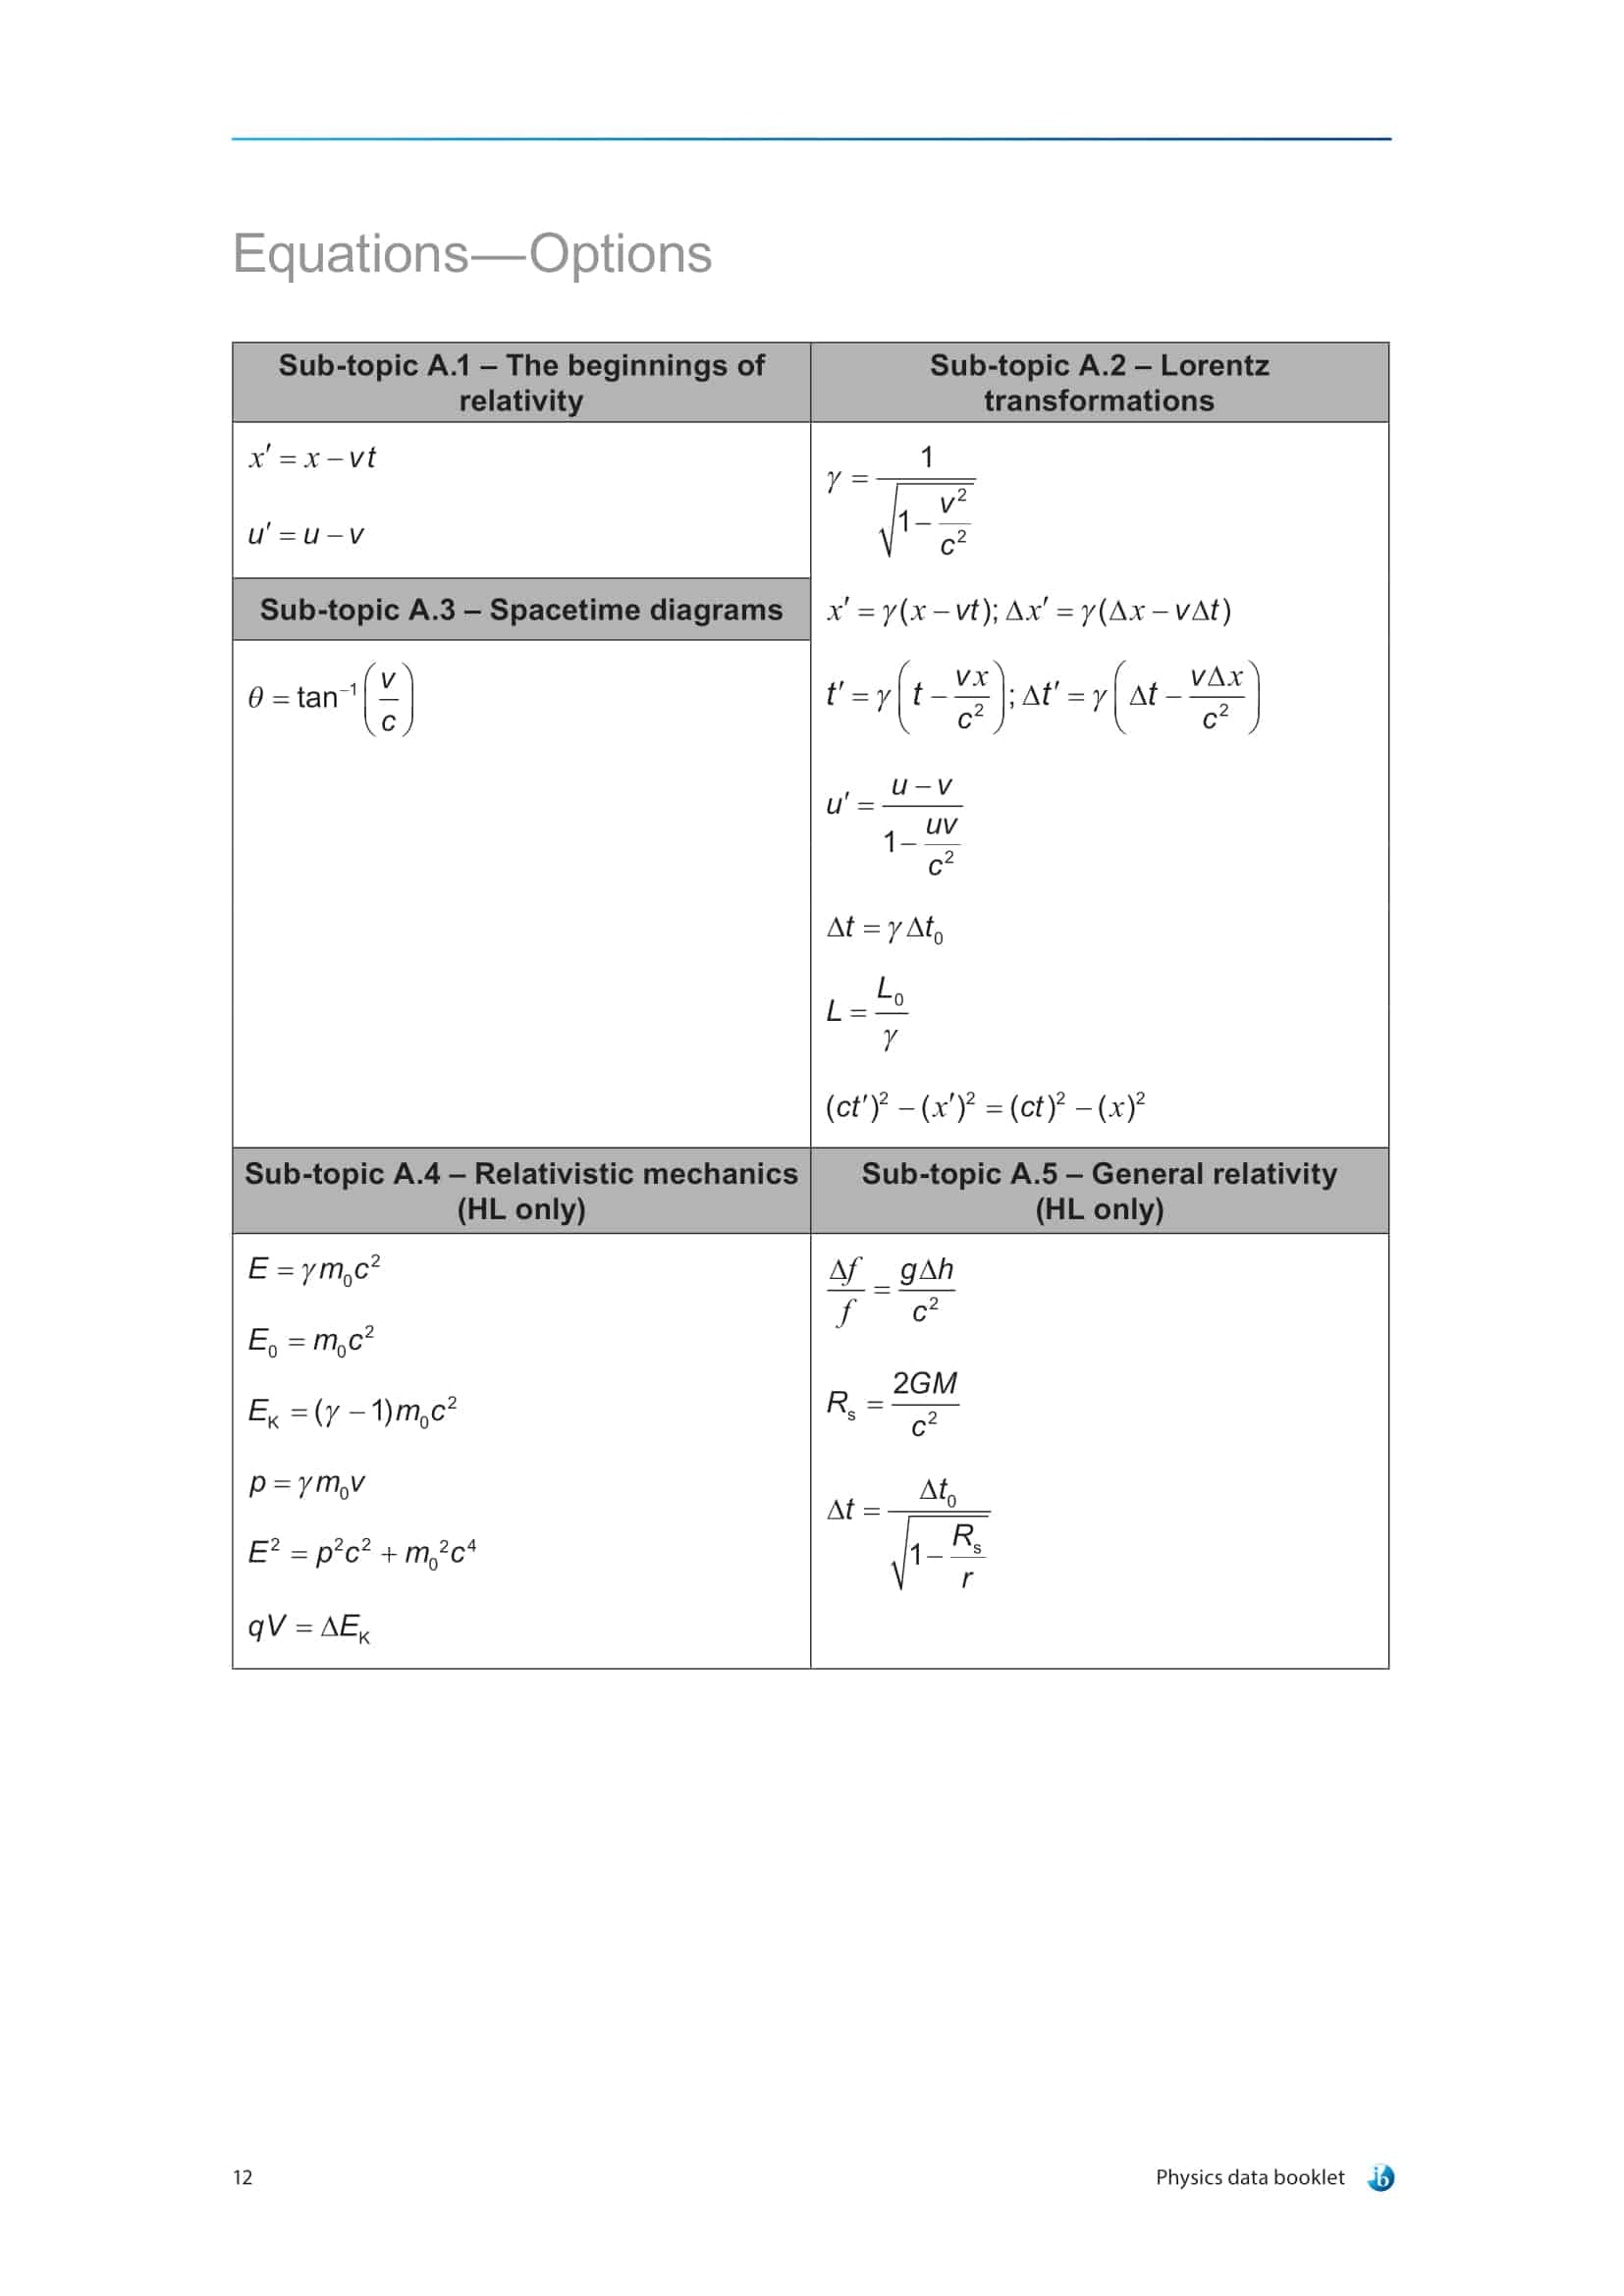 IB Physics Data Booklet-16